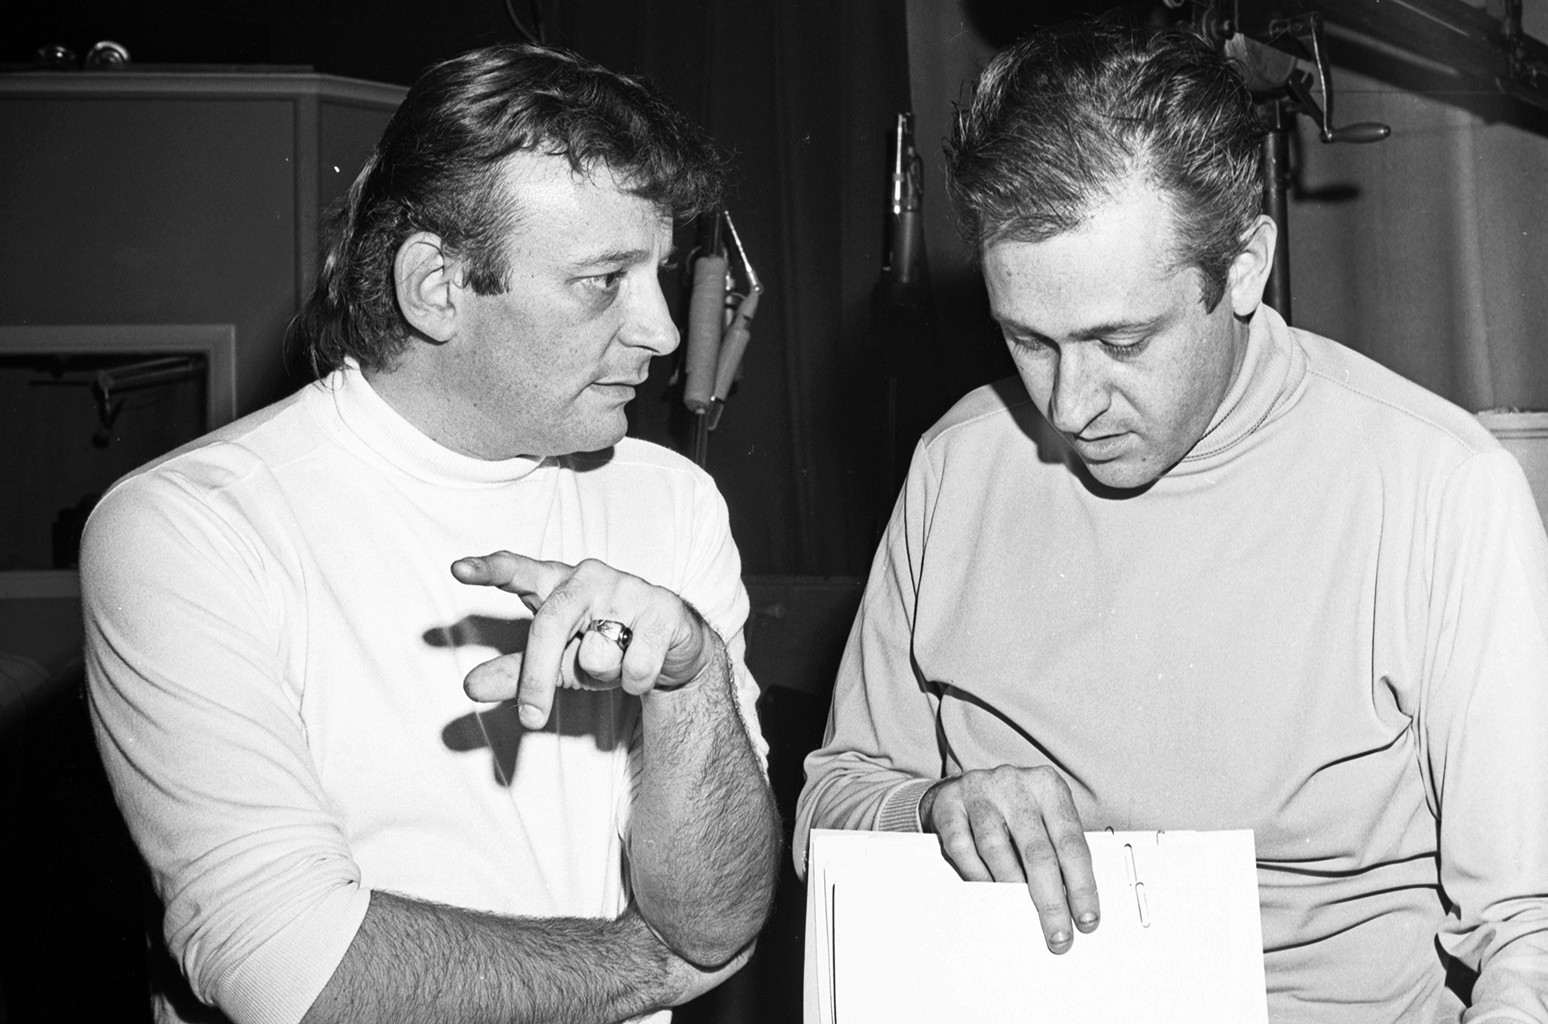 Bert Berns at a Bang Records recording session in the studio on March 28, 1967 in New York.